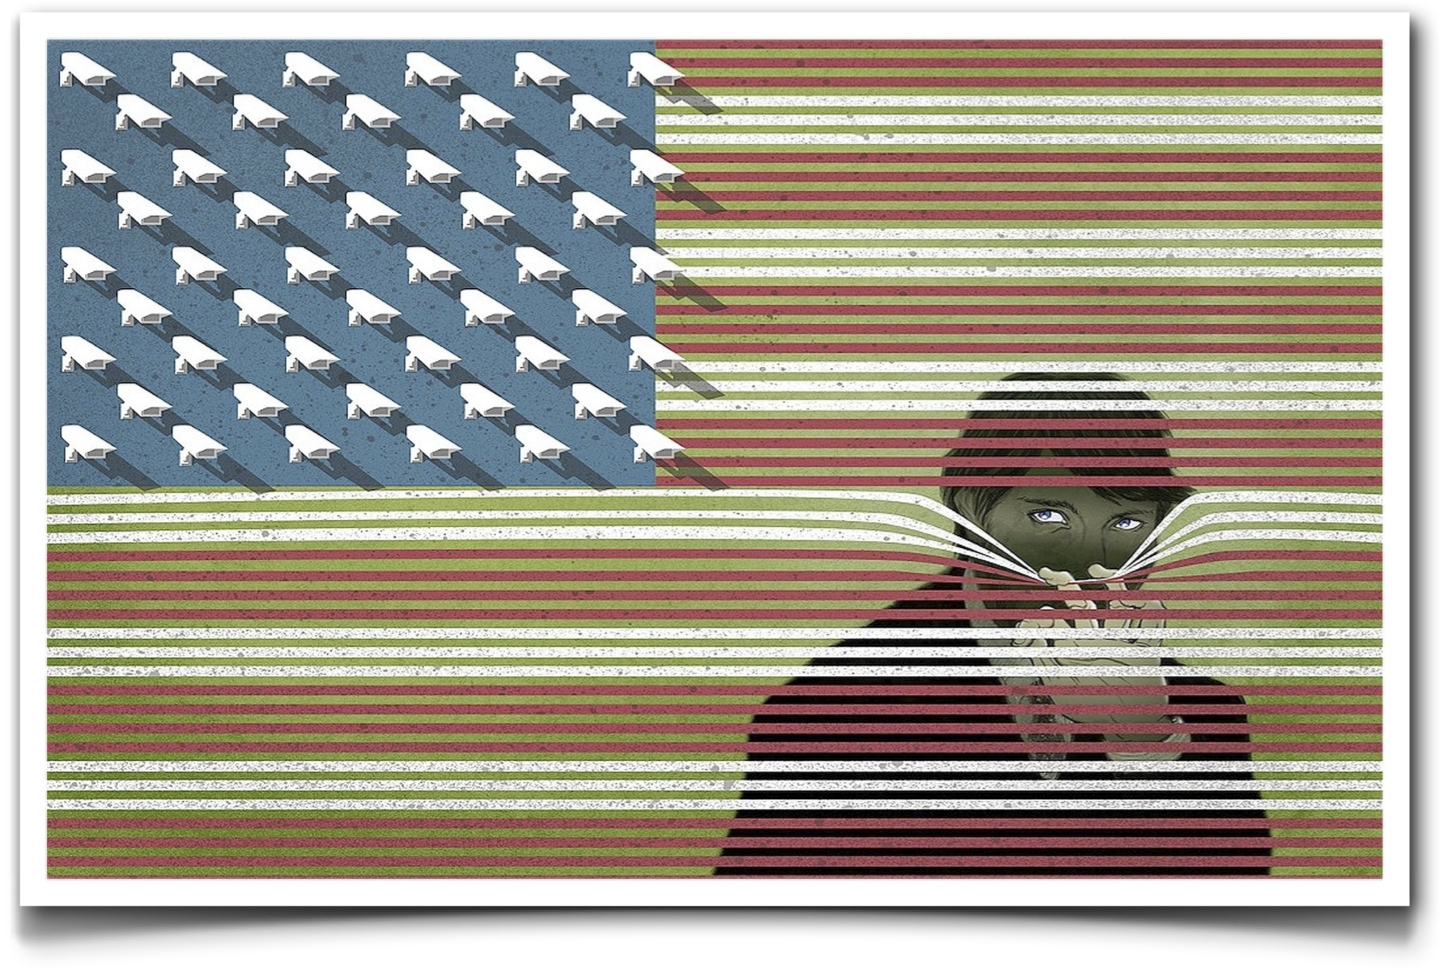 Surveillance 2010 by Will Varner - My Modern Met